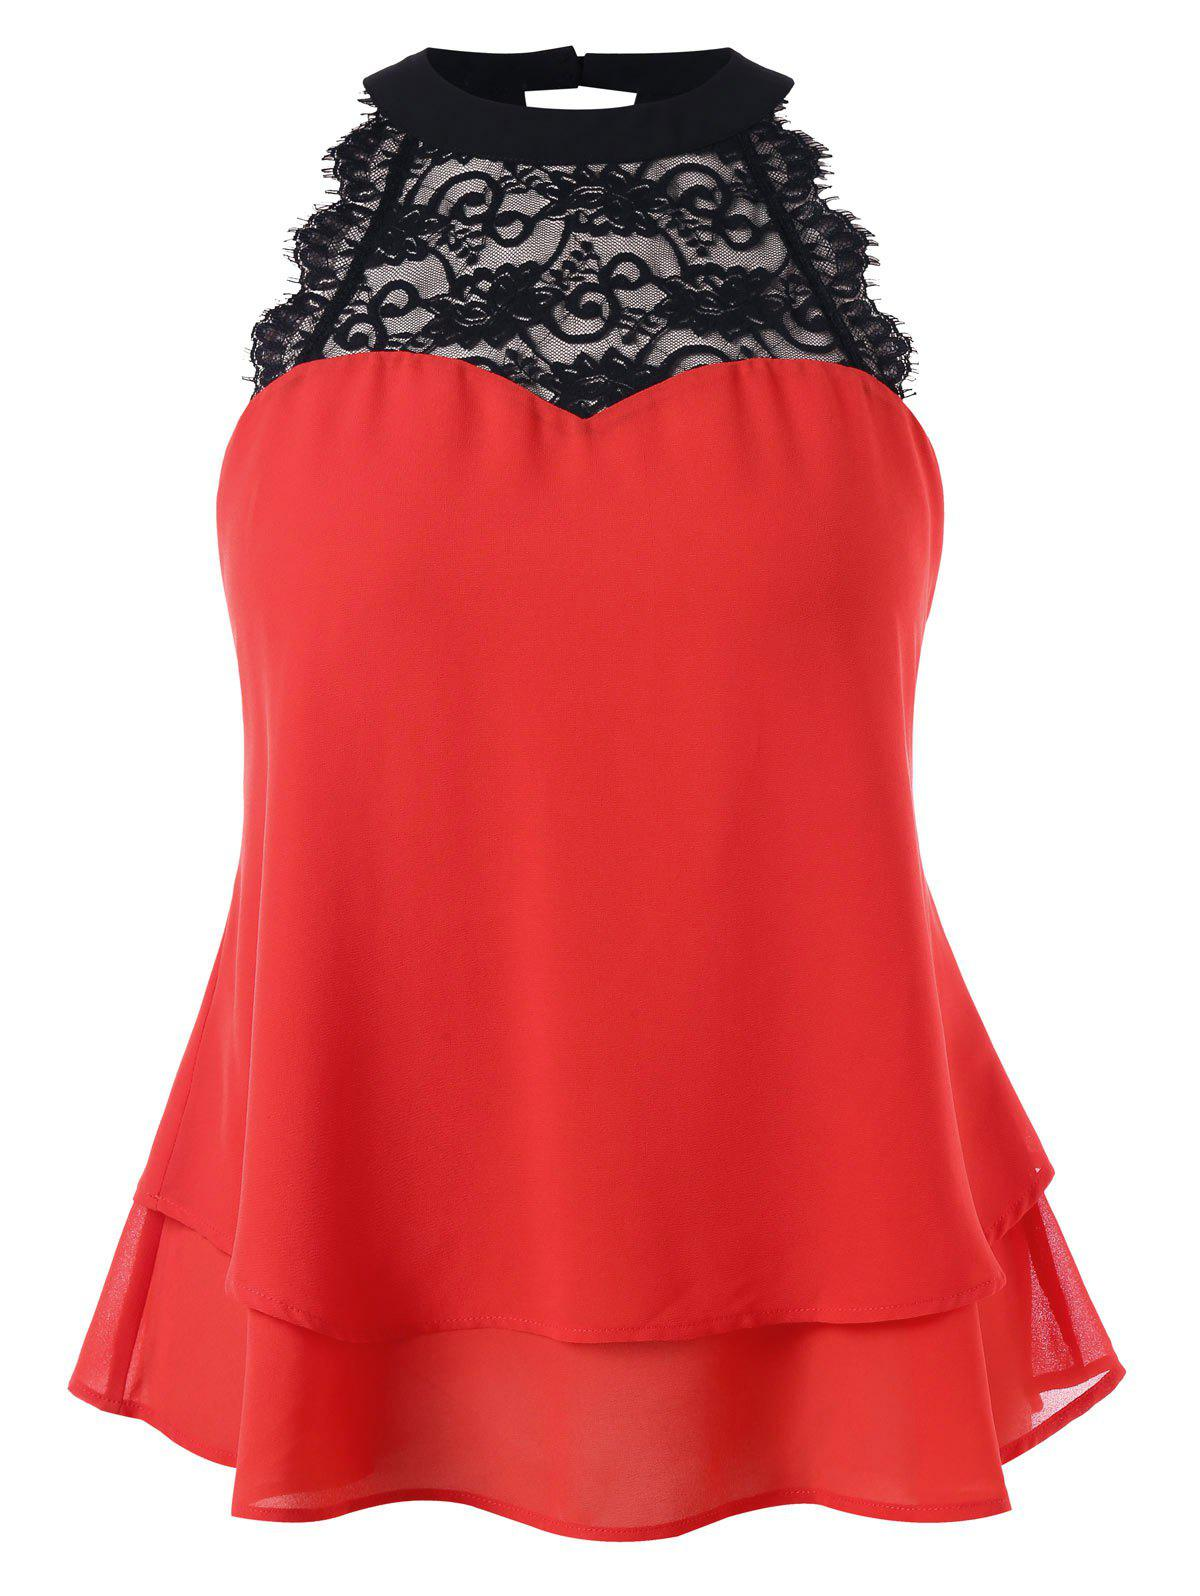 Discount Plus Size Bowknot Embellished Tiered Sleeveless Blouse